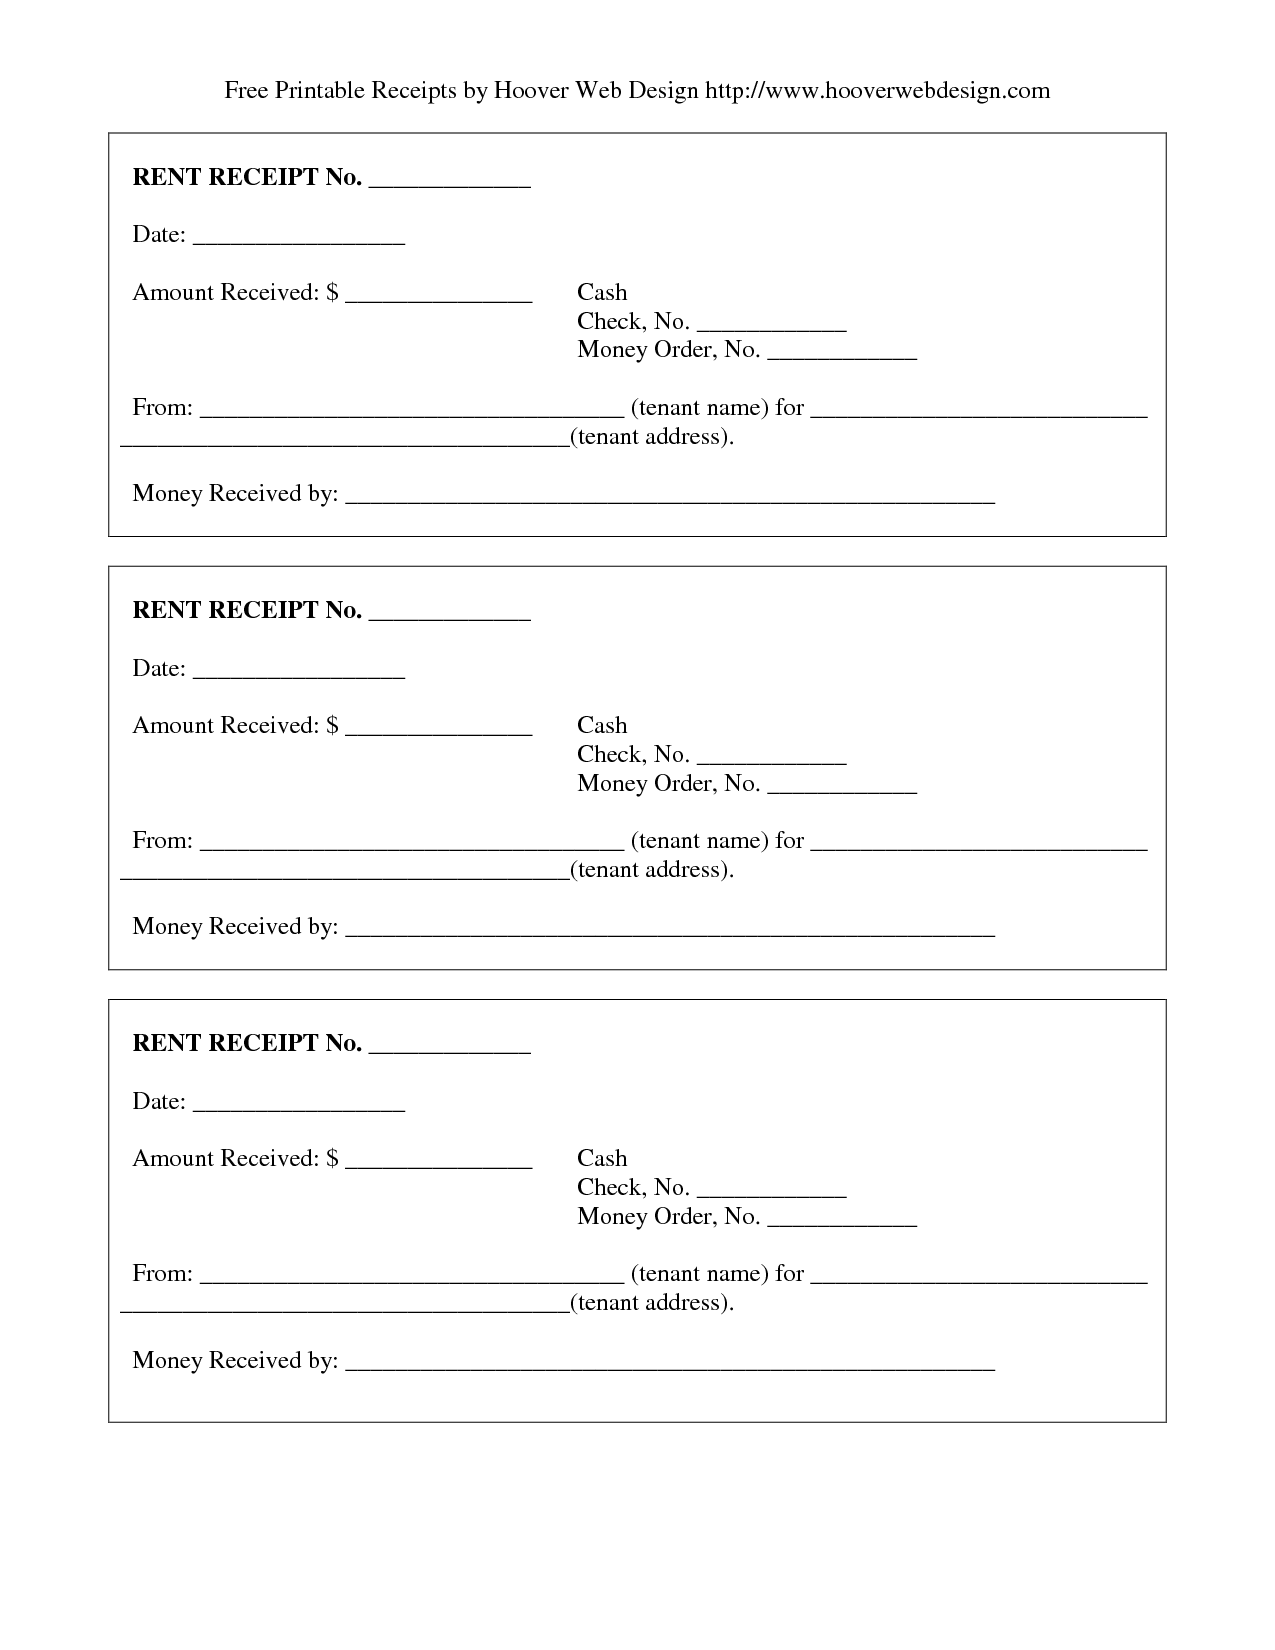 free printable rent receipts